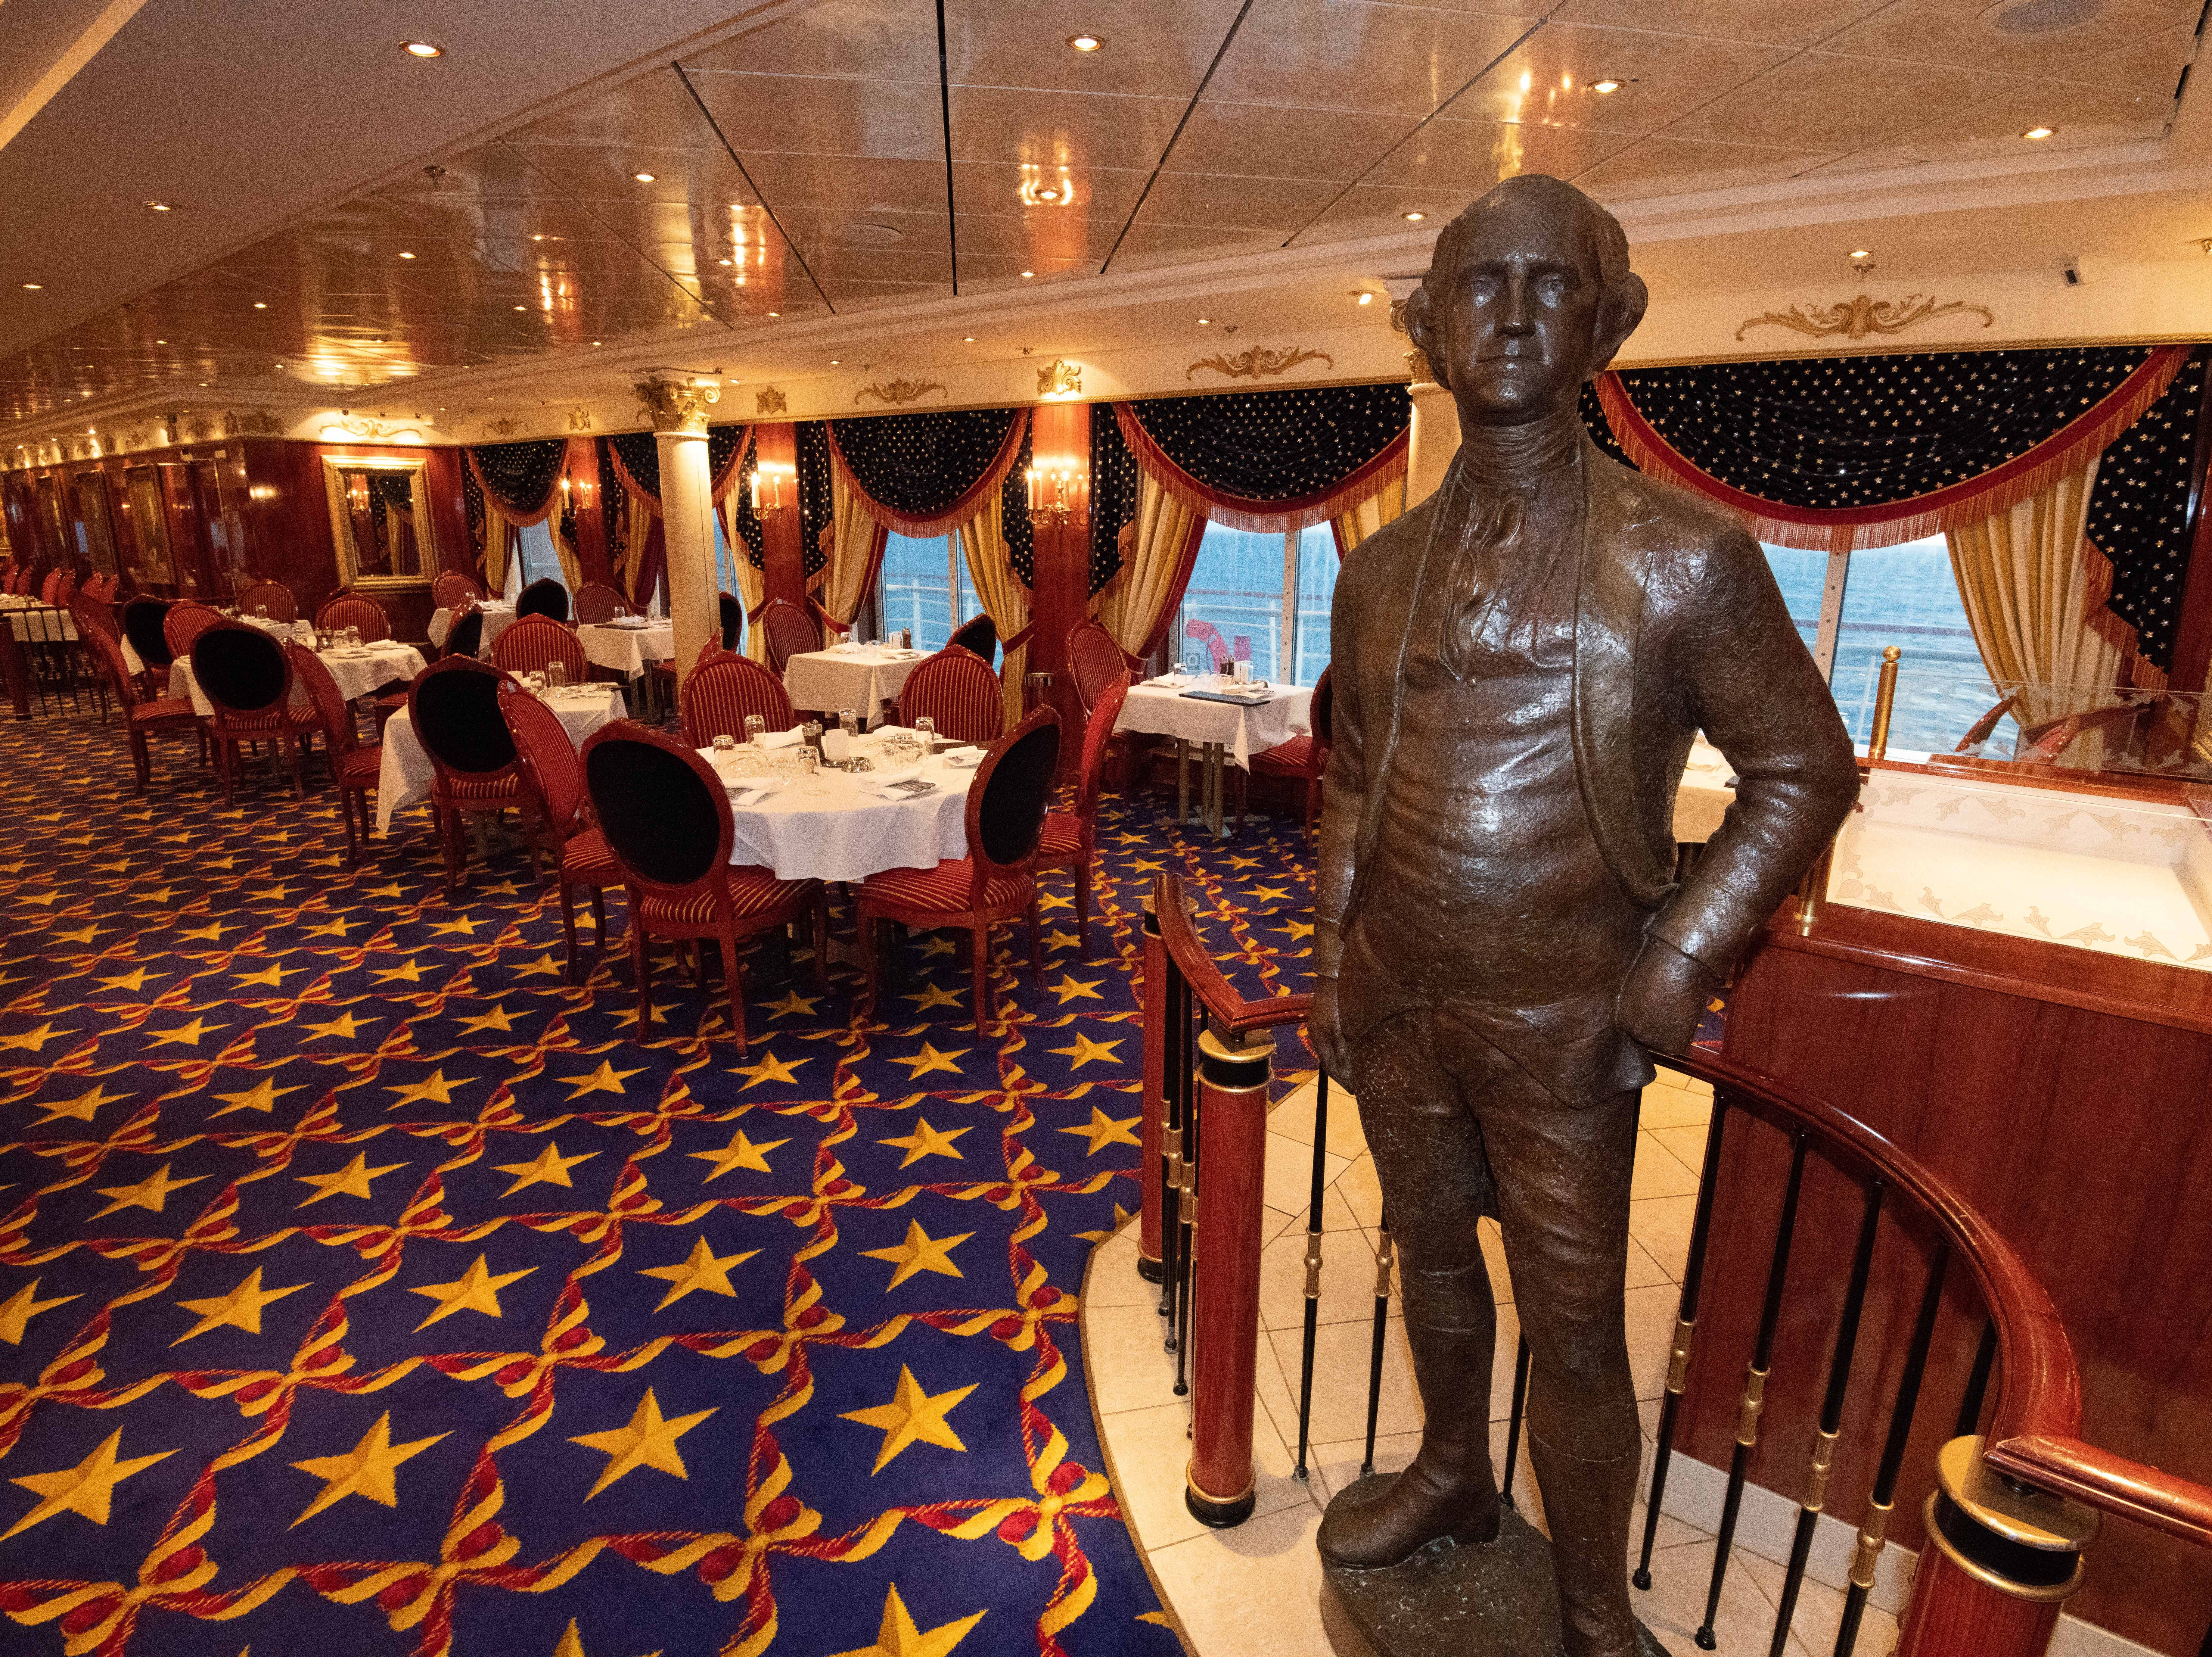 Statues of America's Founding Fathers greet diners at the American-themed Liberty Main Dining Room, which seats 417 people.